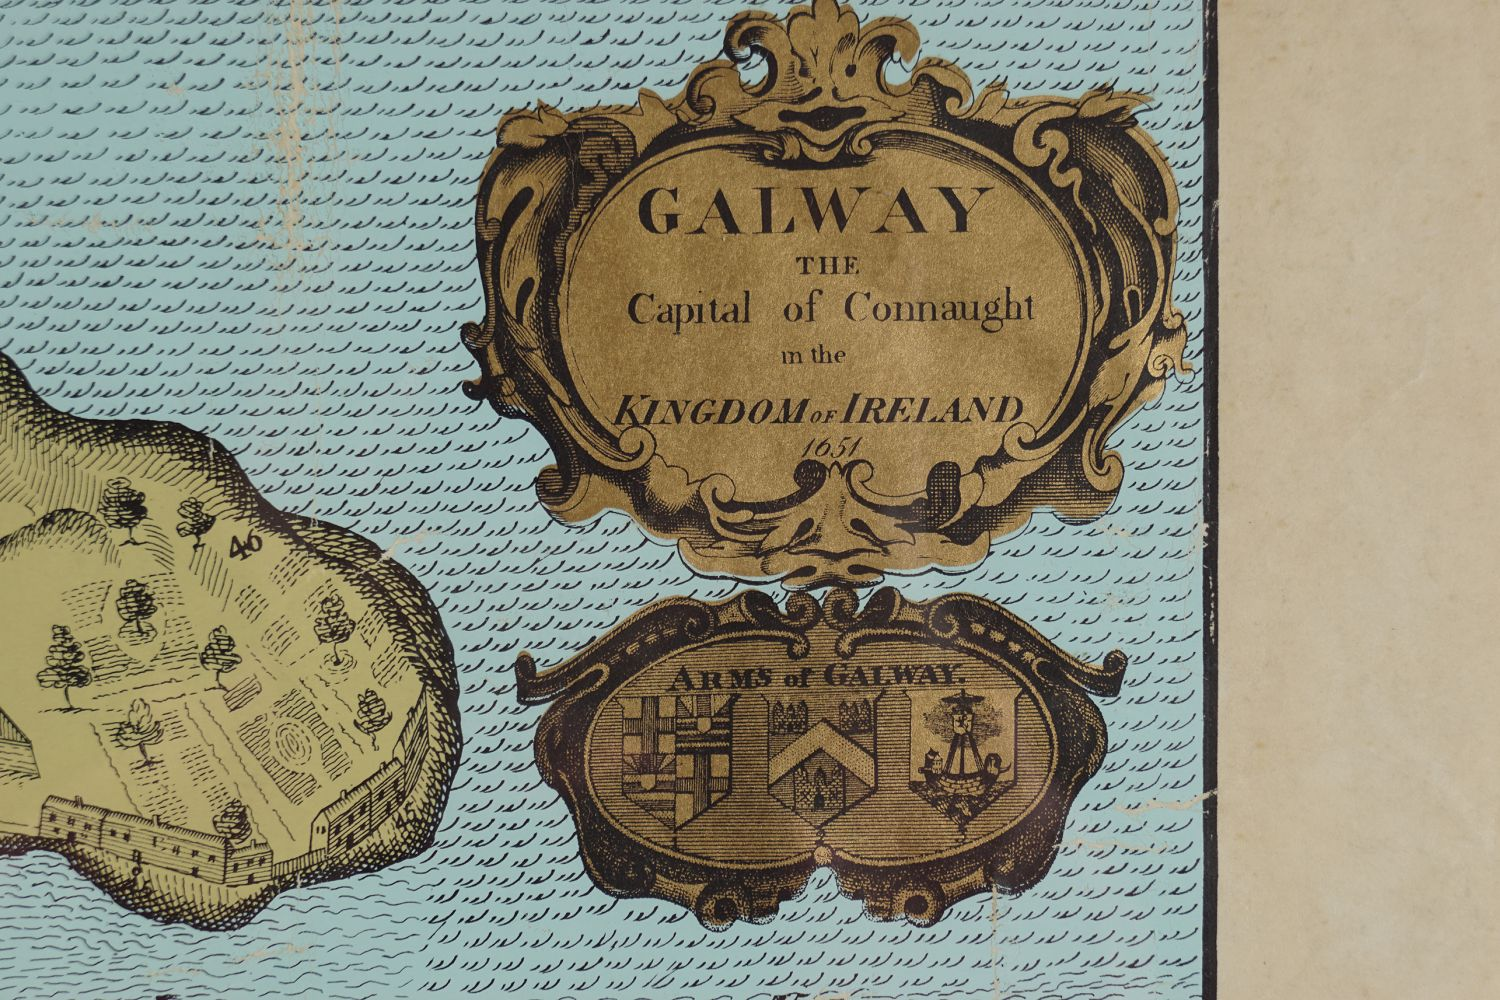 MAP OF GALWAY FROM 1651 - Image 3 of 4